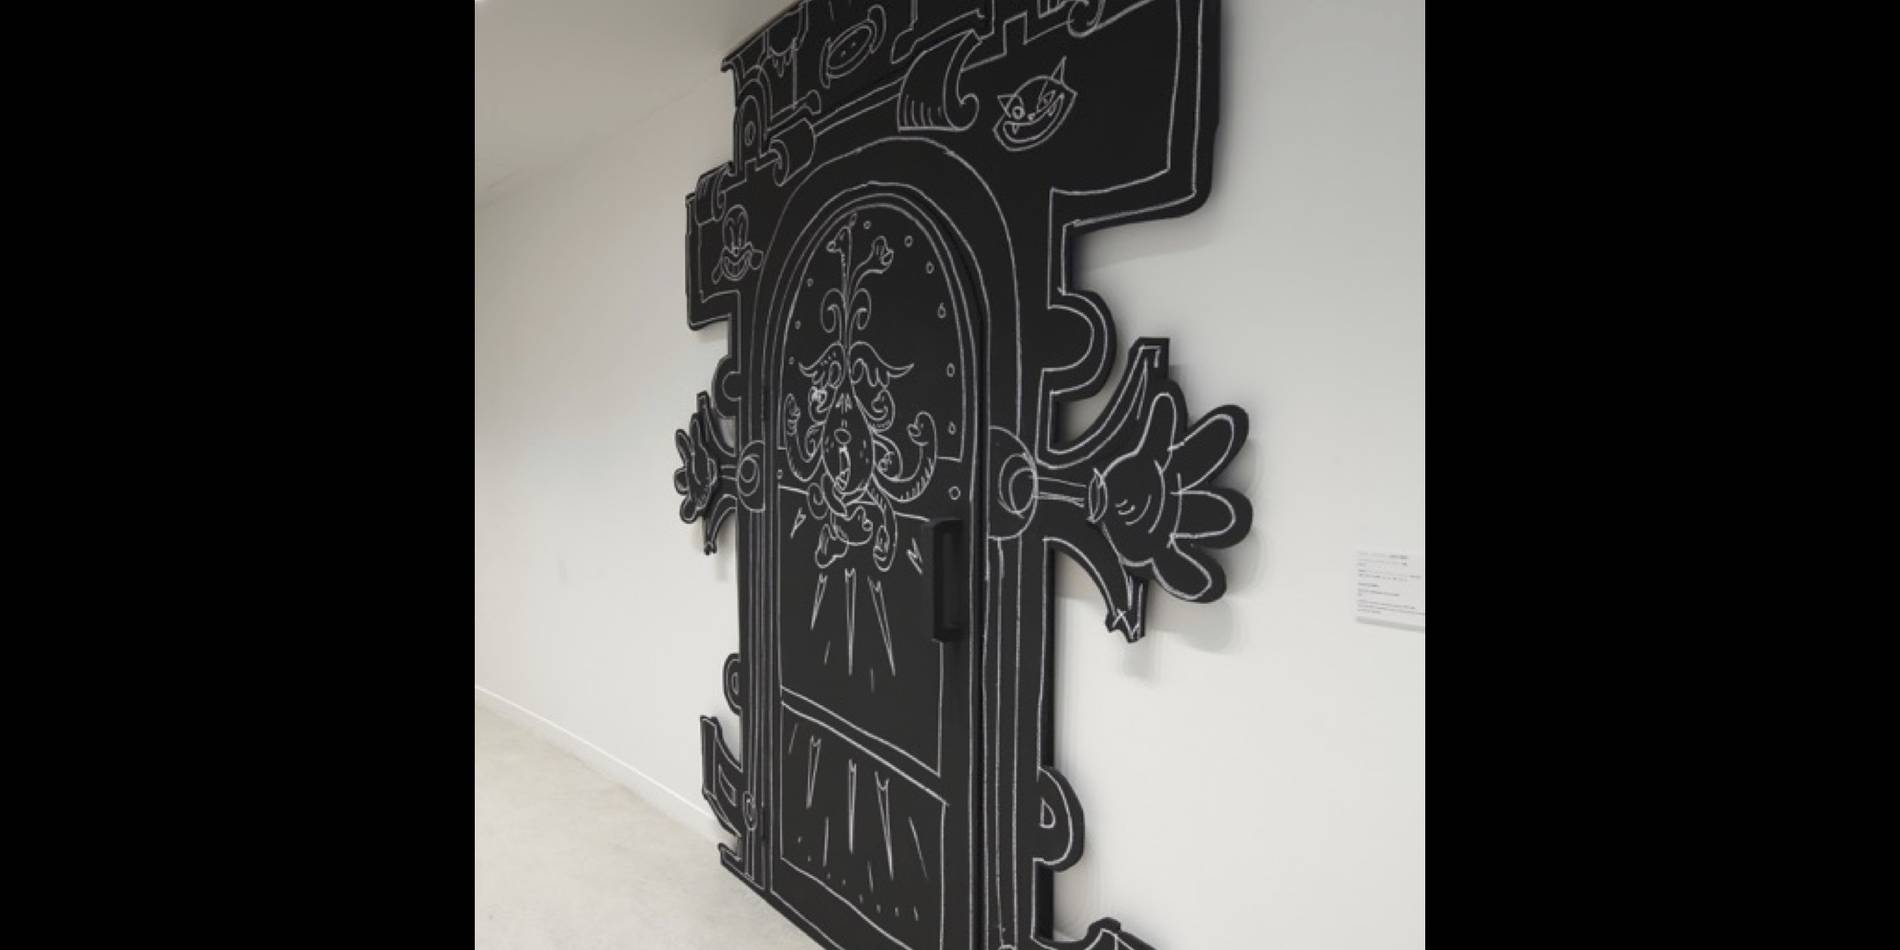 ·: Nicolas Buffe :· - Nicolas Buffe, The Dream of Polifilo, Hara Museum 20 Locus Terribilis, door,  (photo by Keizo Kioku)